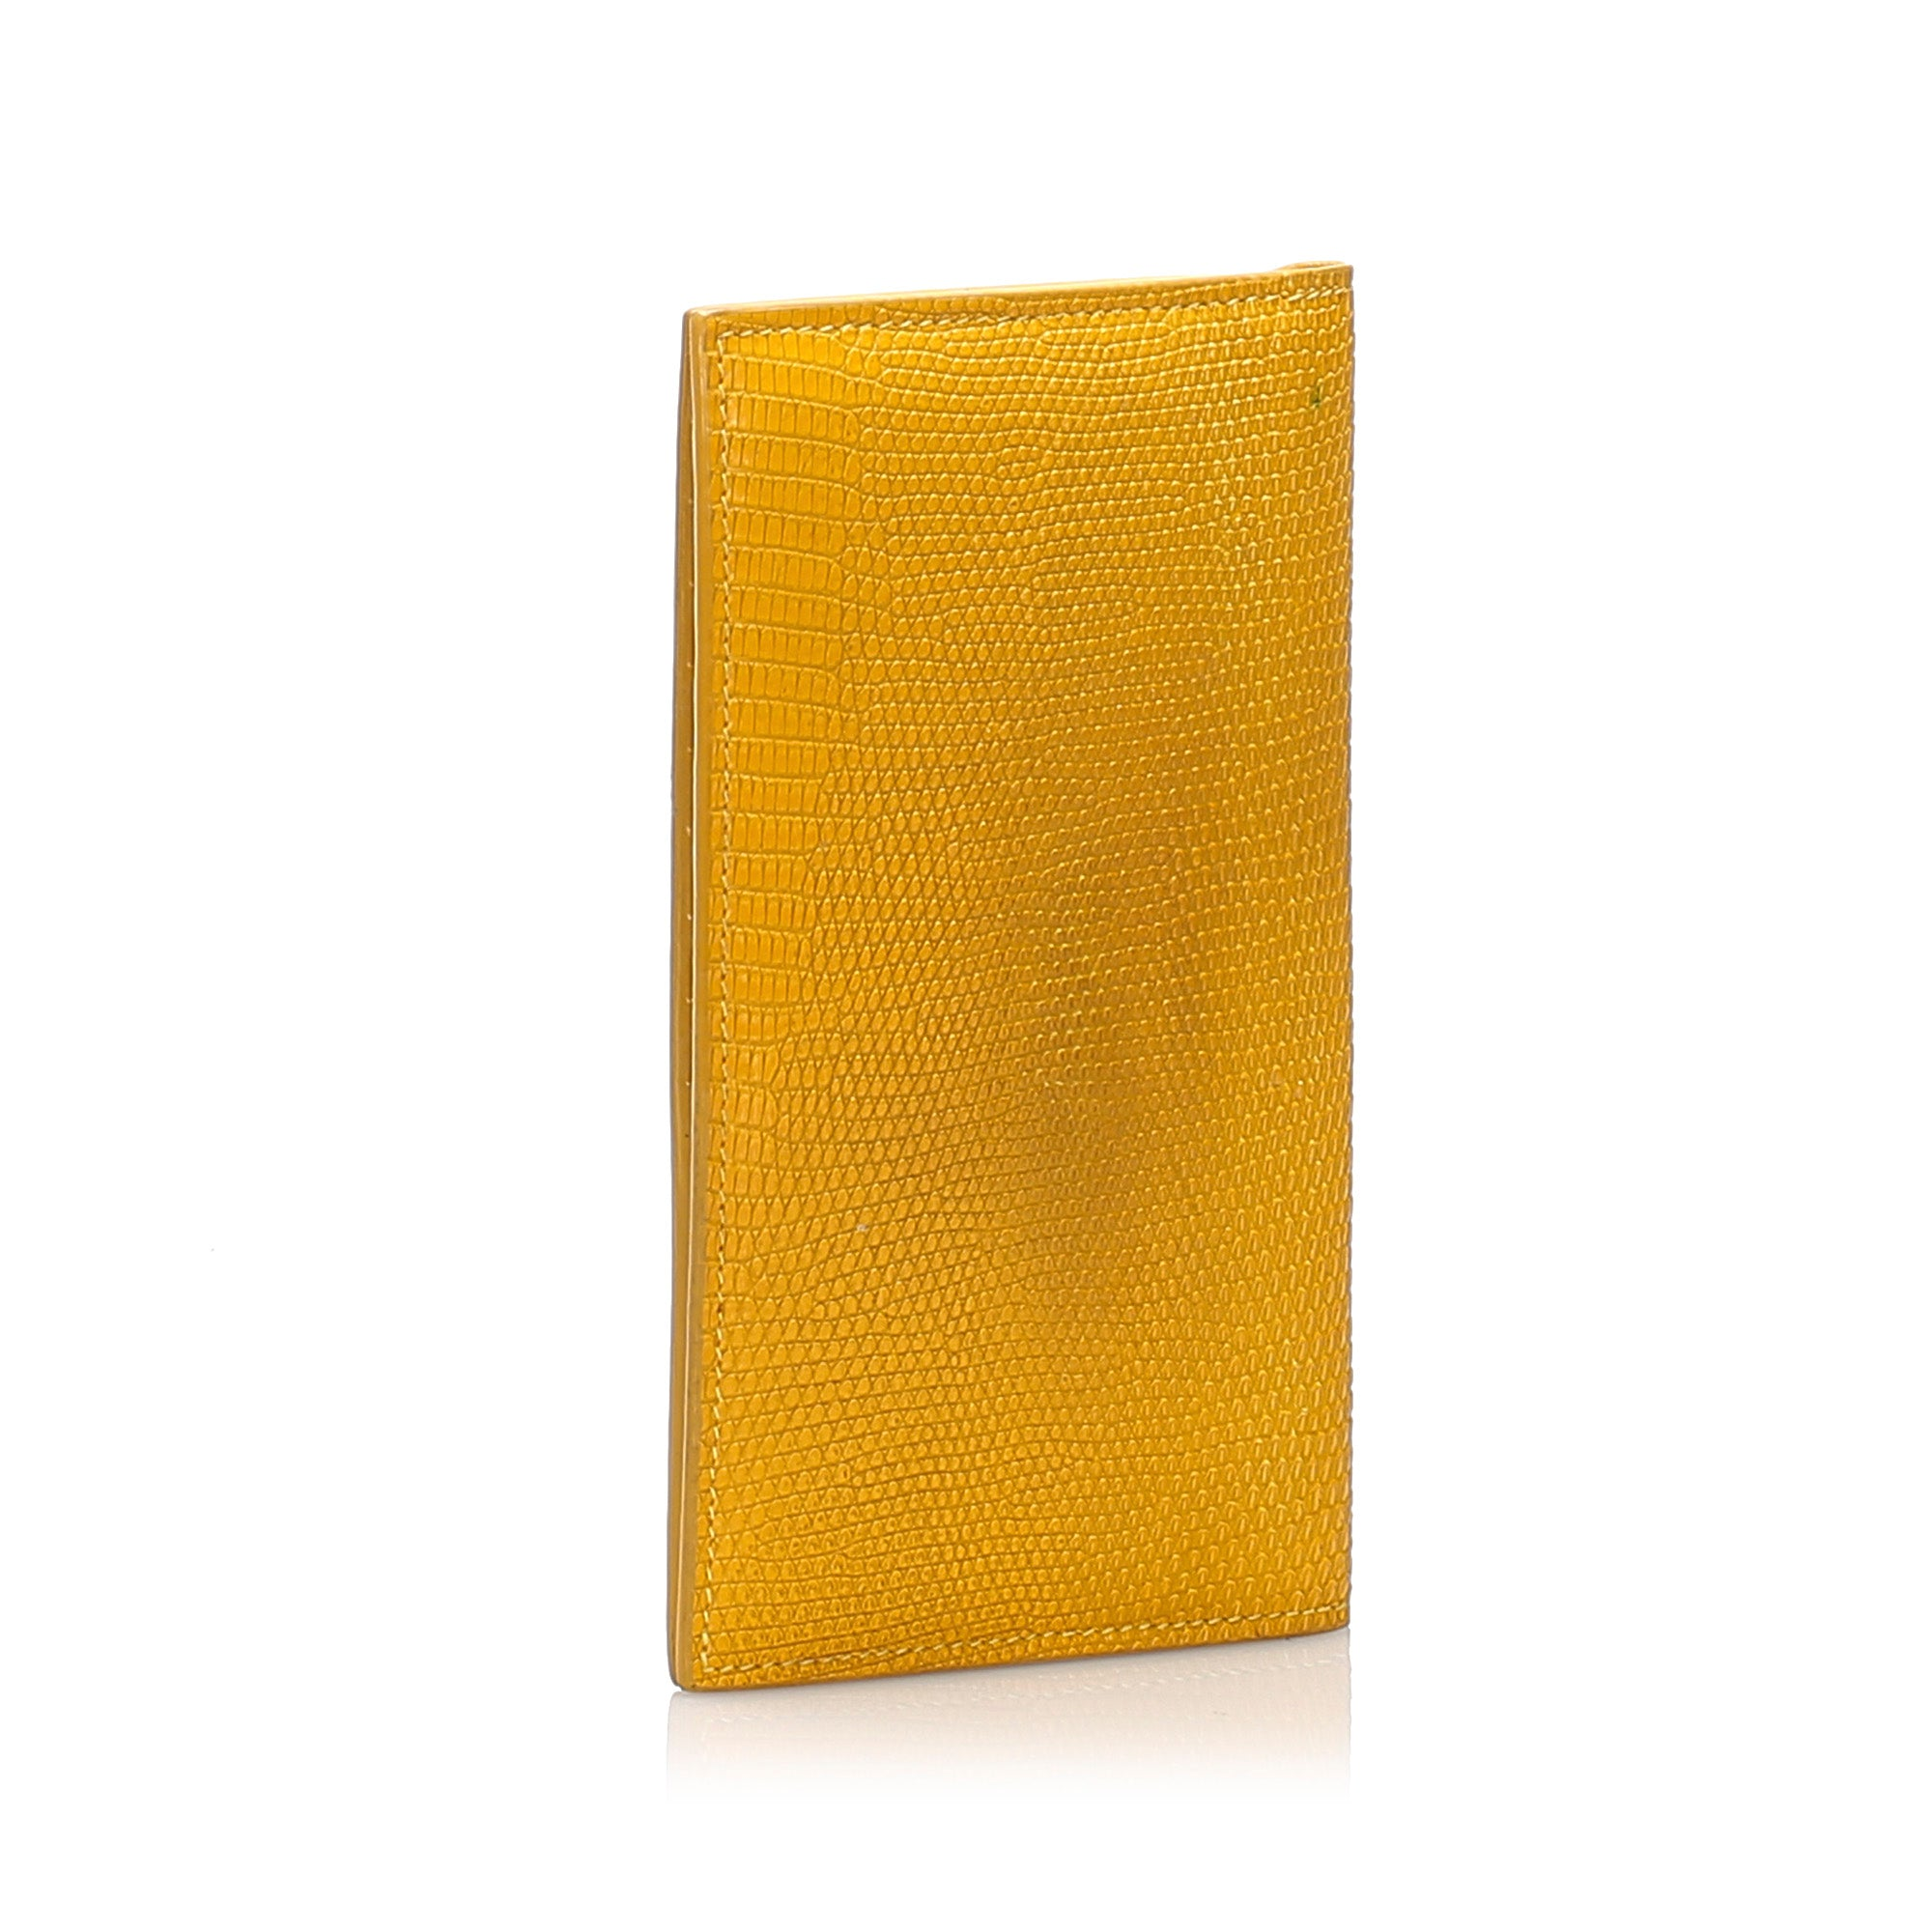 Bottega Veneta Yellow Lizard Leather Wallet